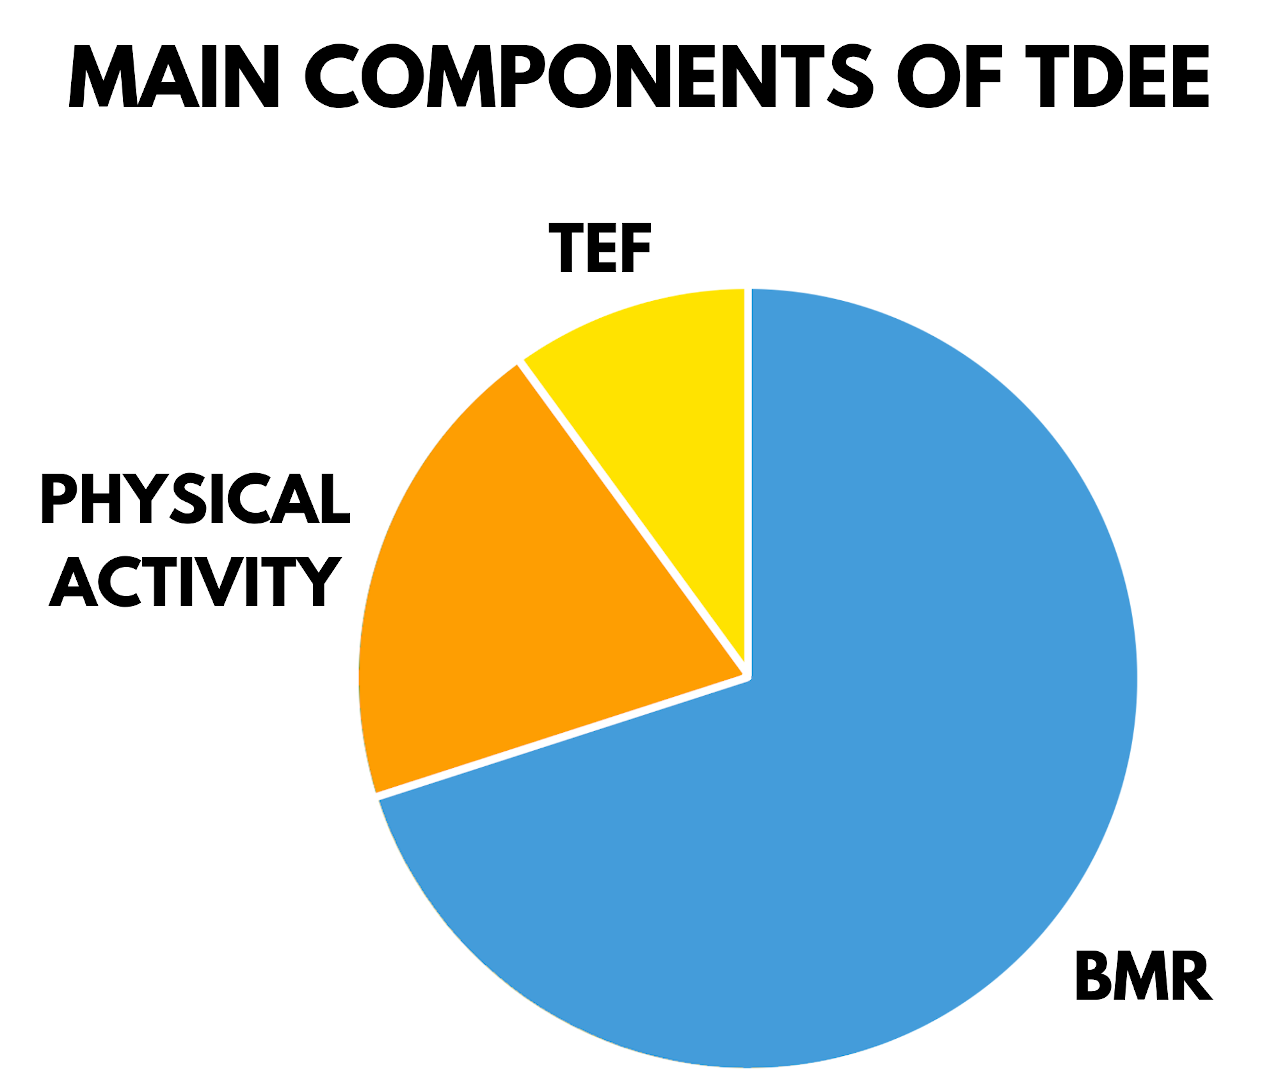 pie chart showing the three main components of TDE being BMR, physical activity, and TEF